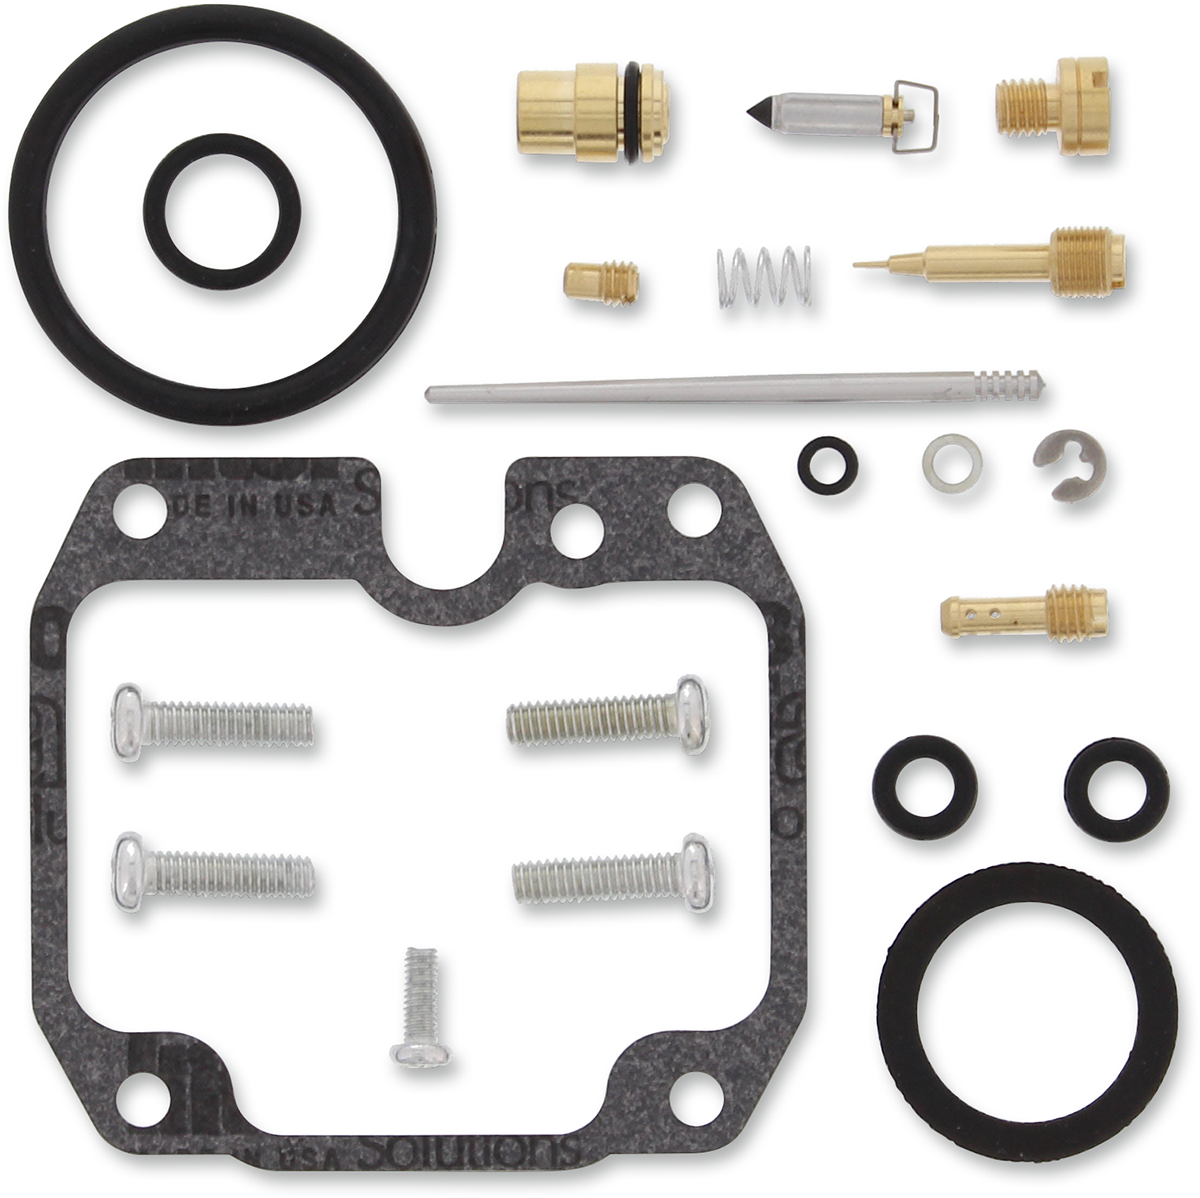 Moose Racing Atv Carburetor Repair Kit for 04-13 Yamaha YFM125 Grizzly